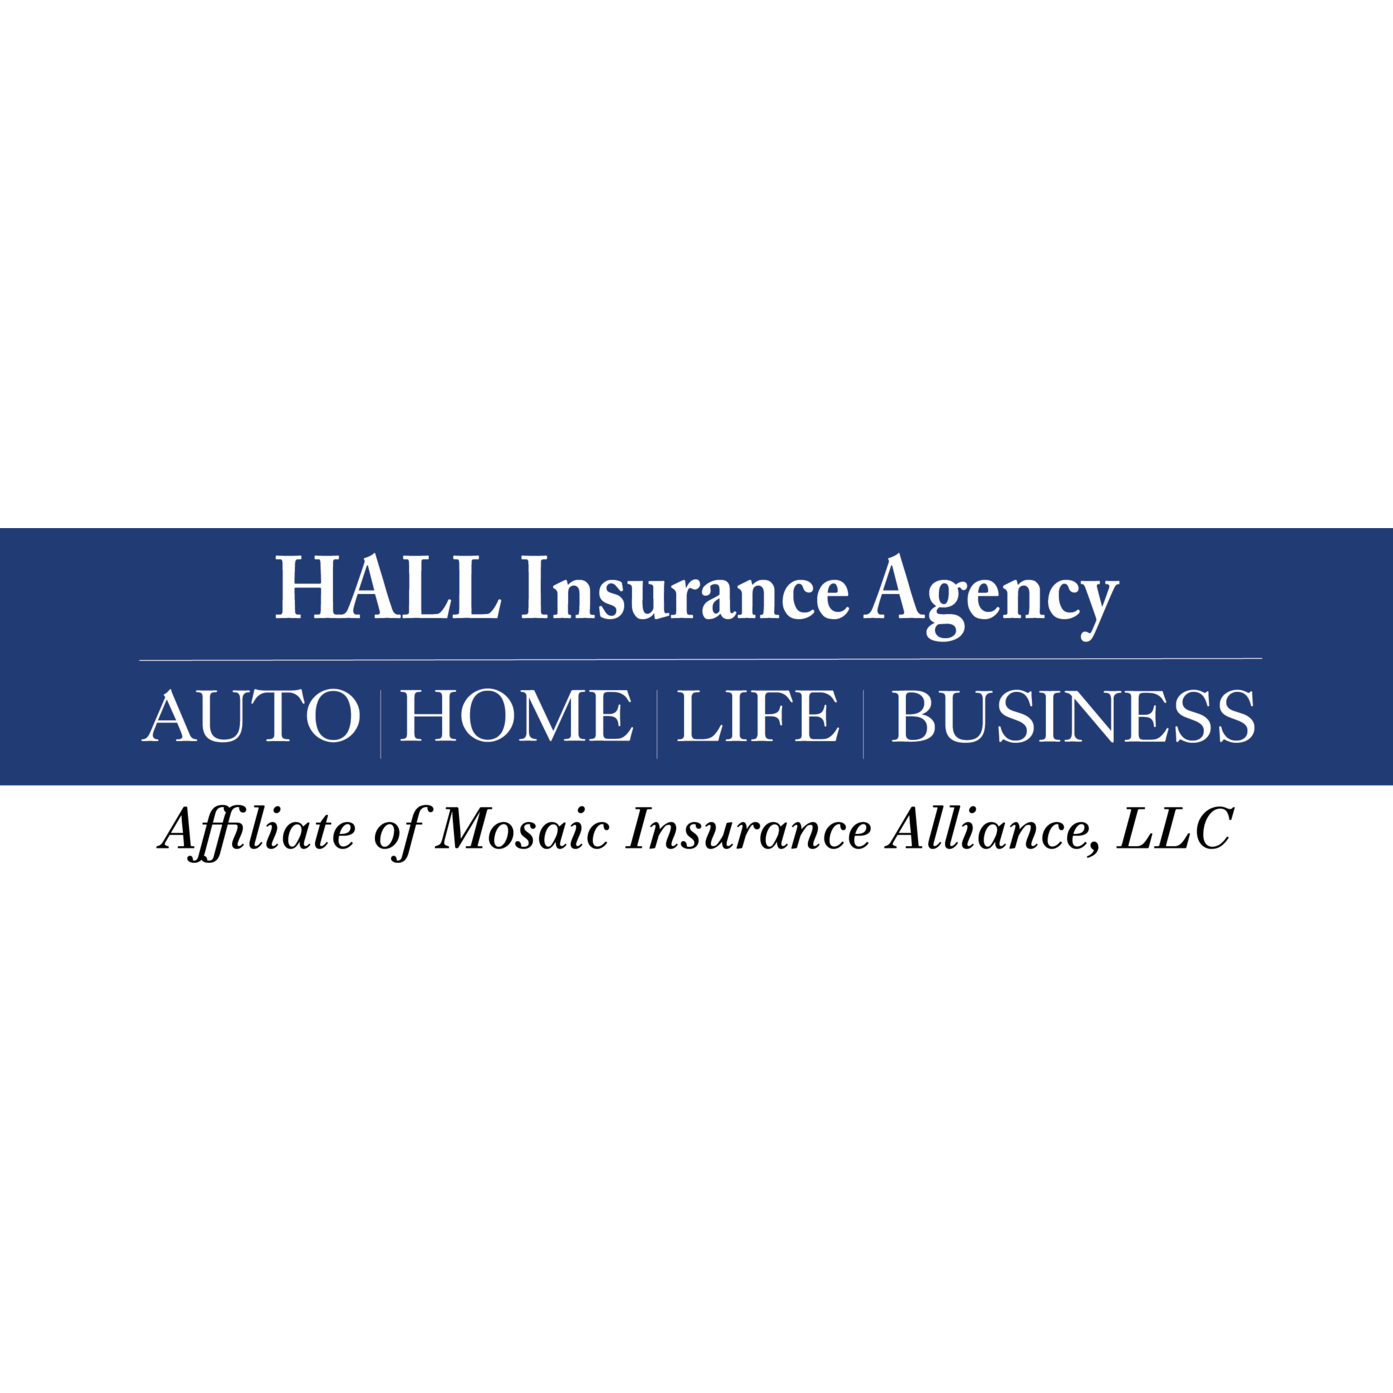 Rae Ann Hall - HALL Insurance Agency image 1